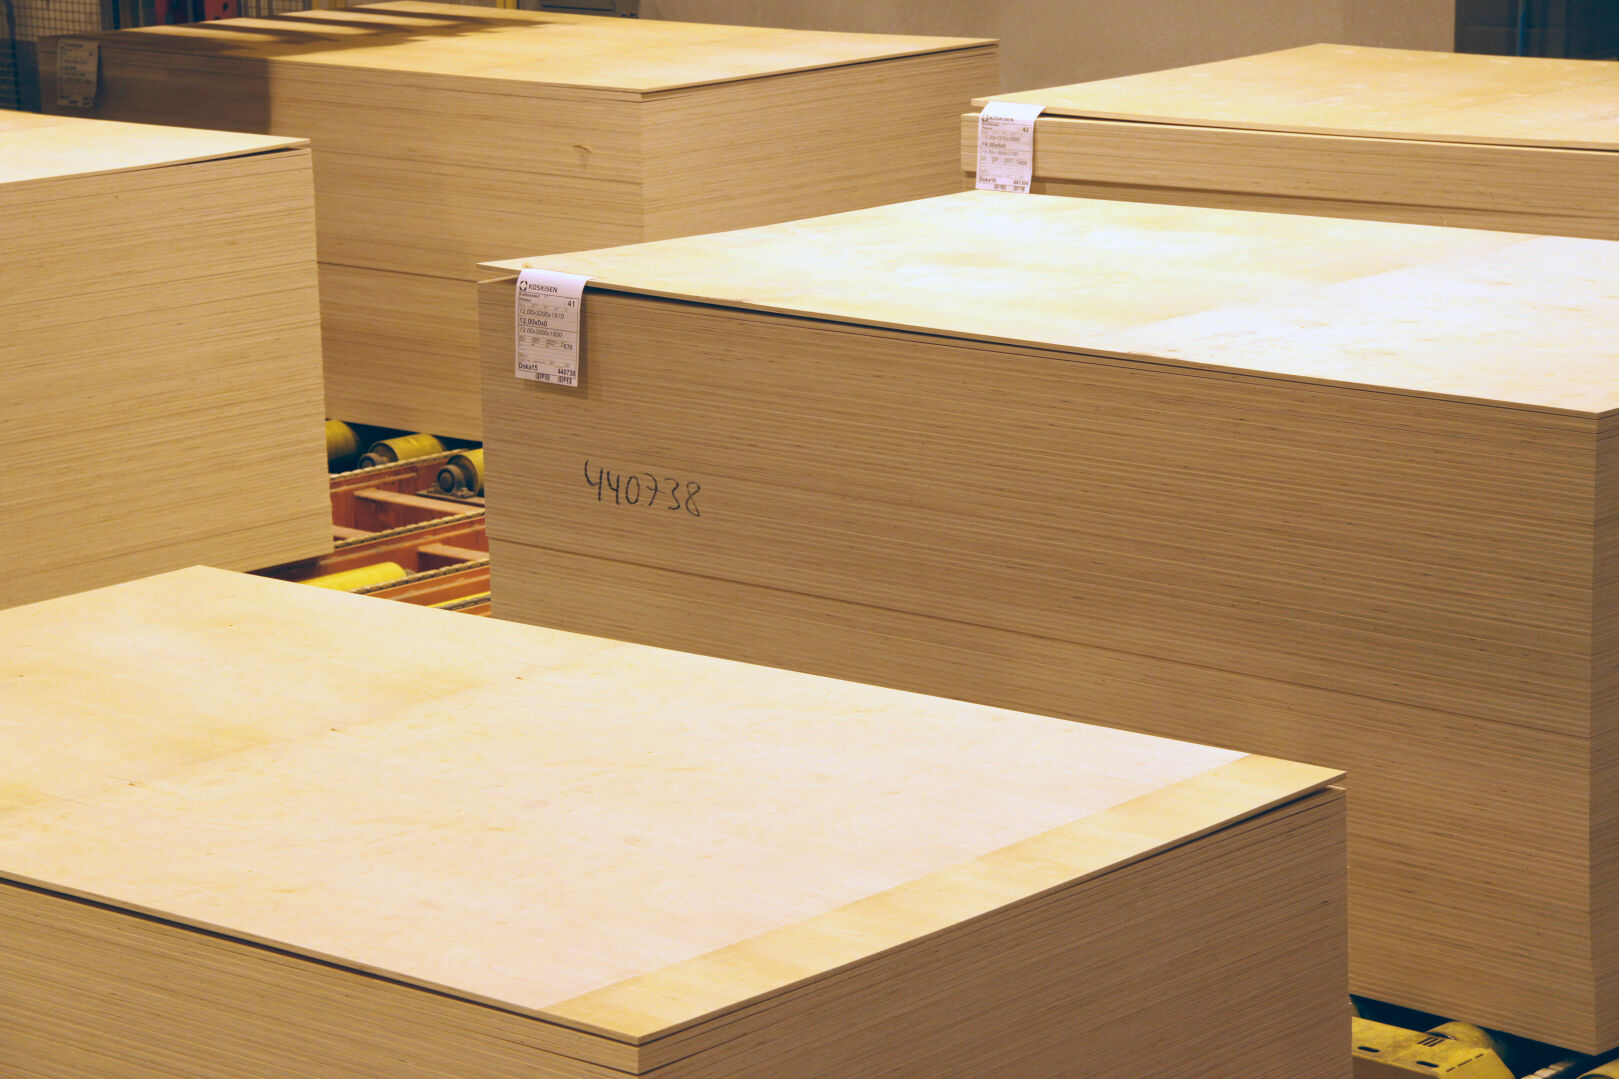 Koskisen's plywood products are globally known for their tailored solutions, high quality and customer orientation.